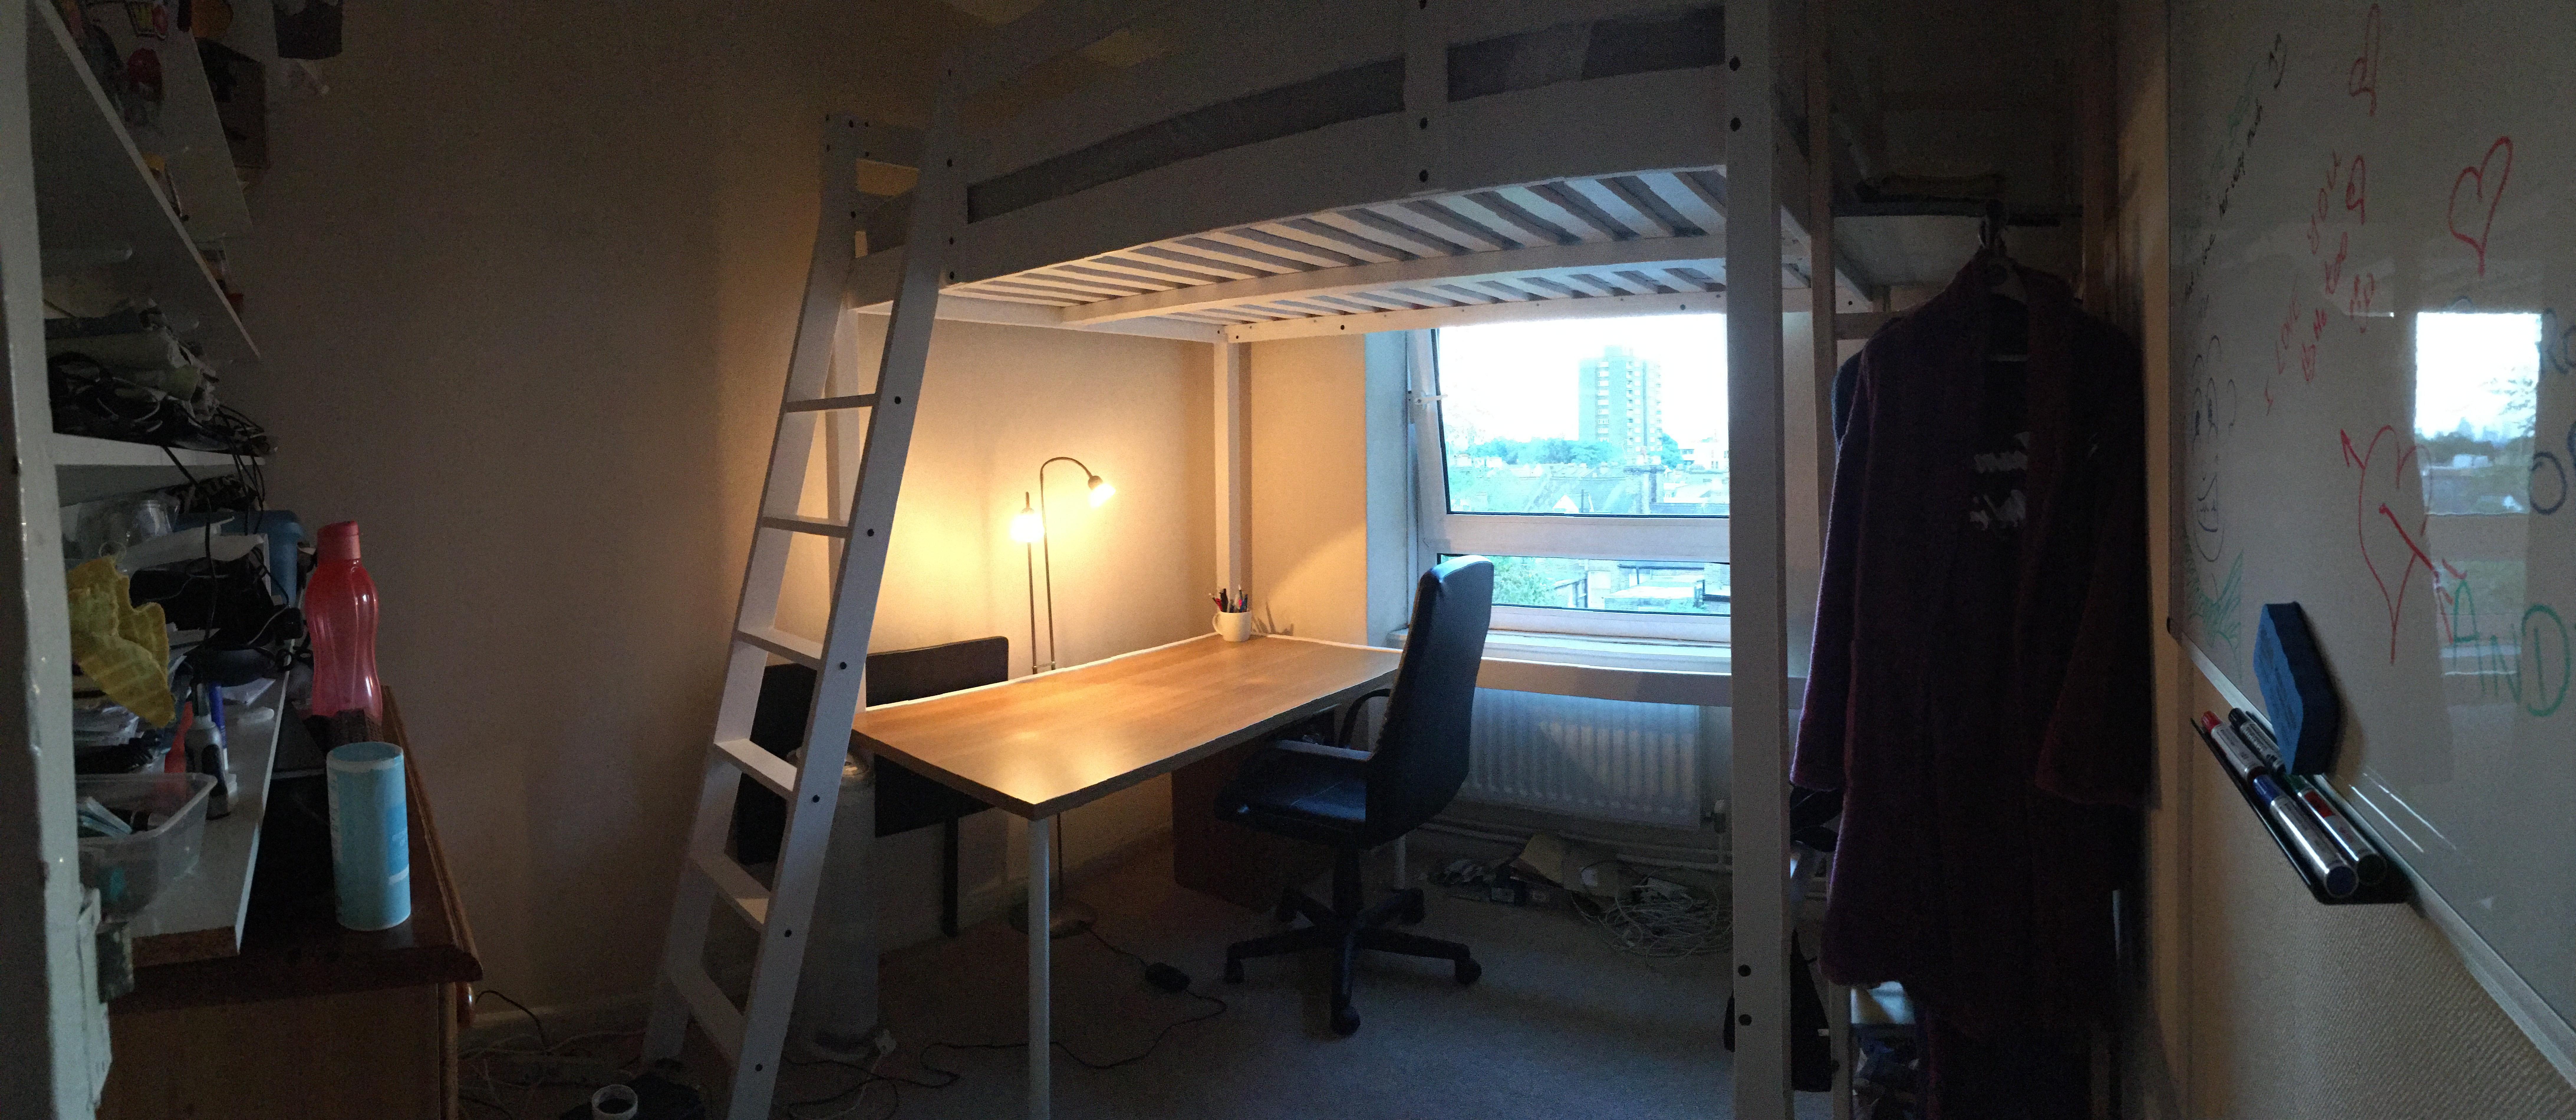 Double loft bed Ikea (Stora) with mattress